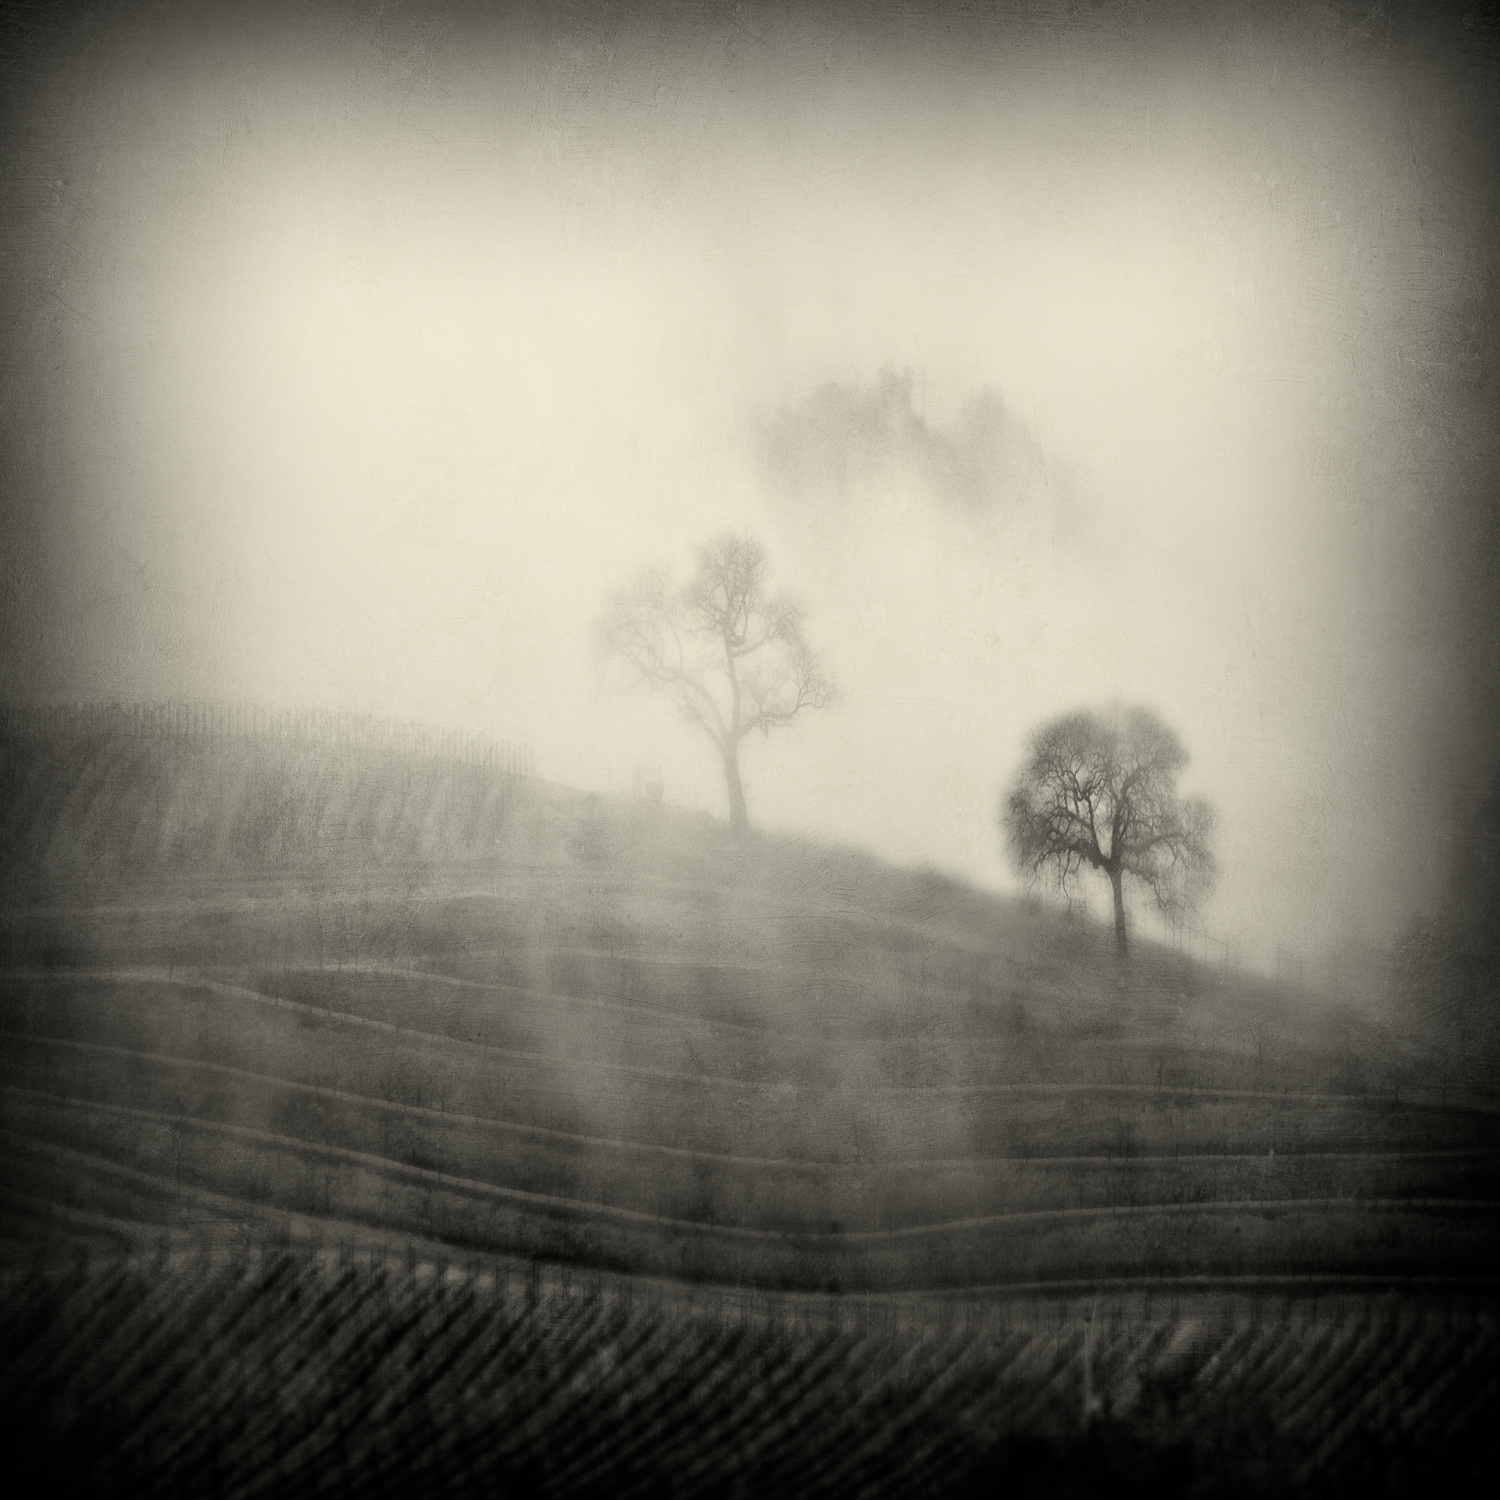 2_trees_in_the_fog36x36flatprint.jpg